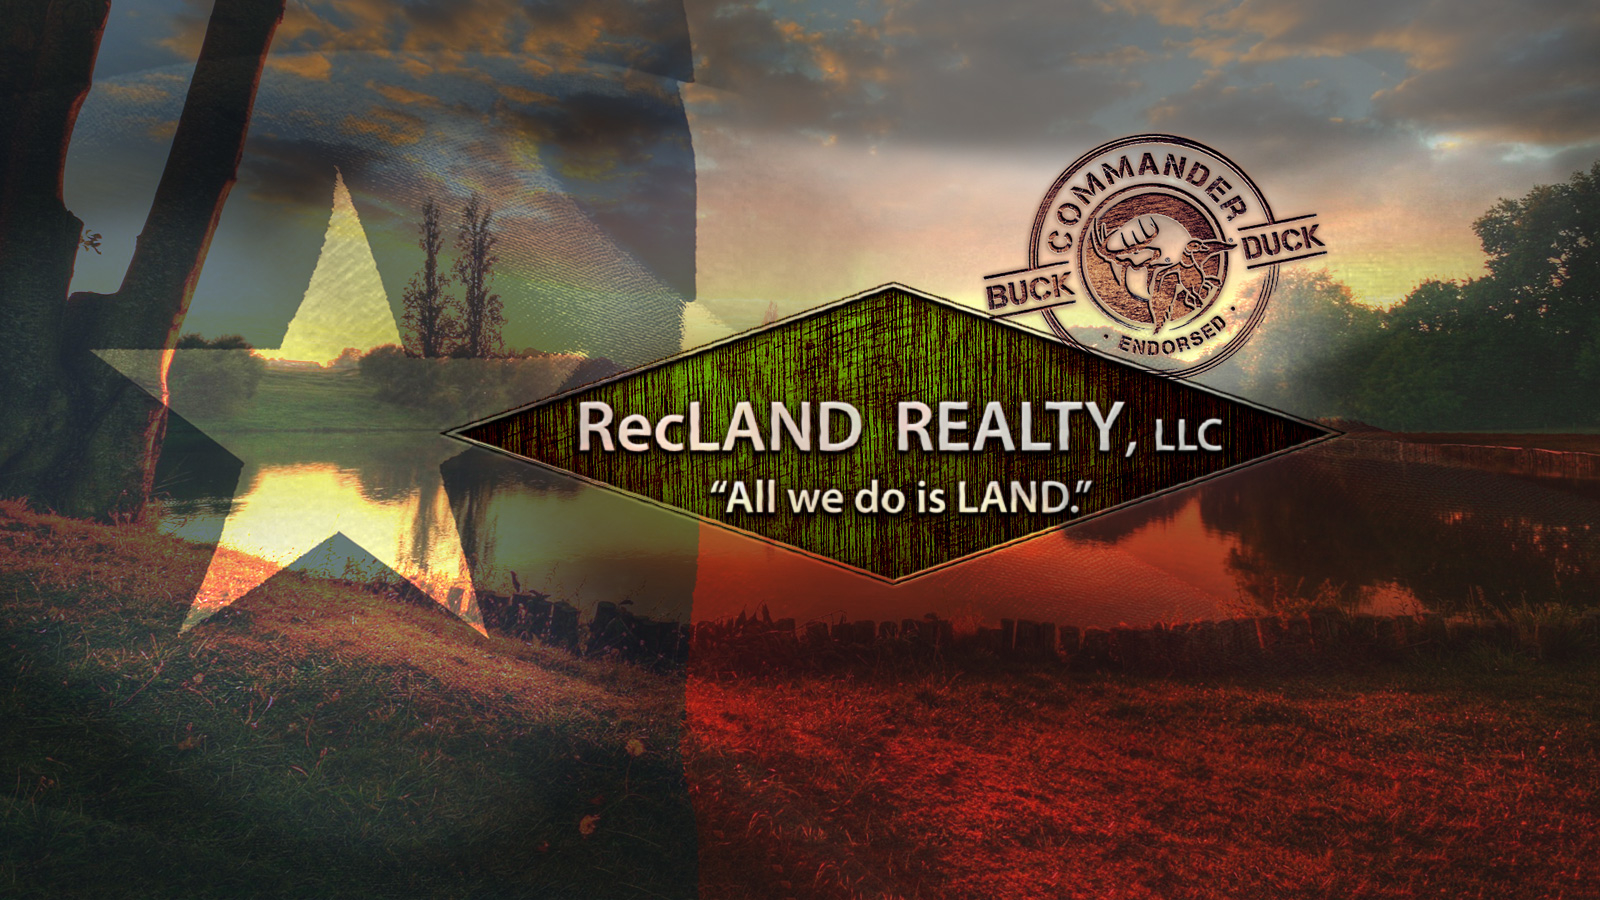 RecLand Realty image 1